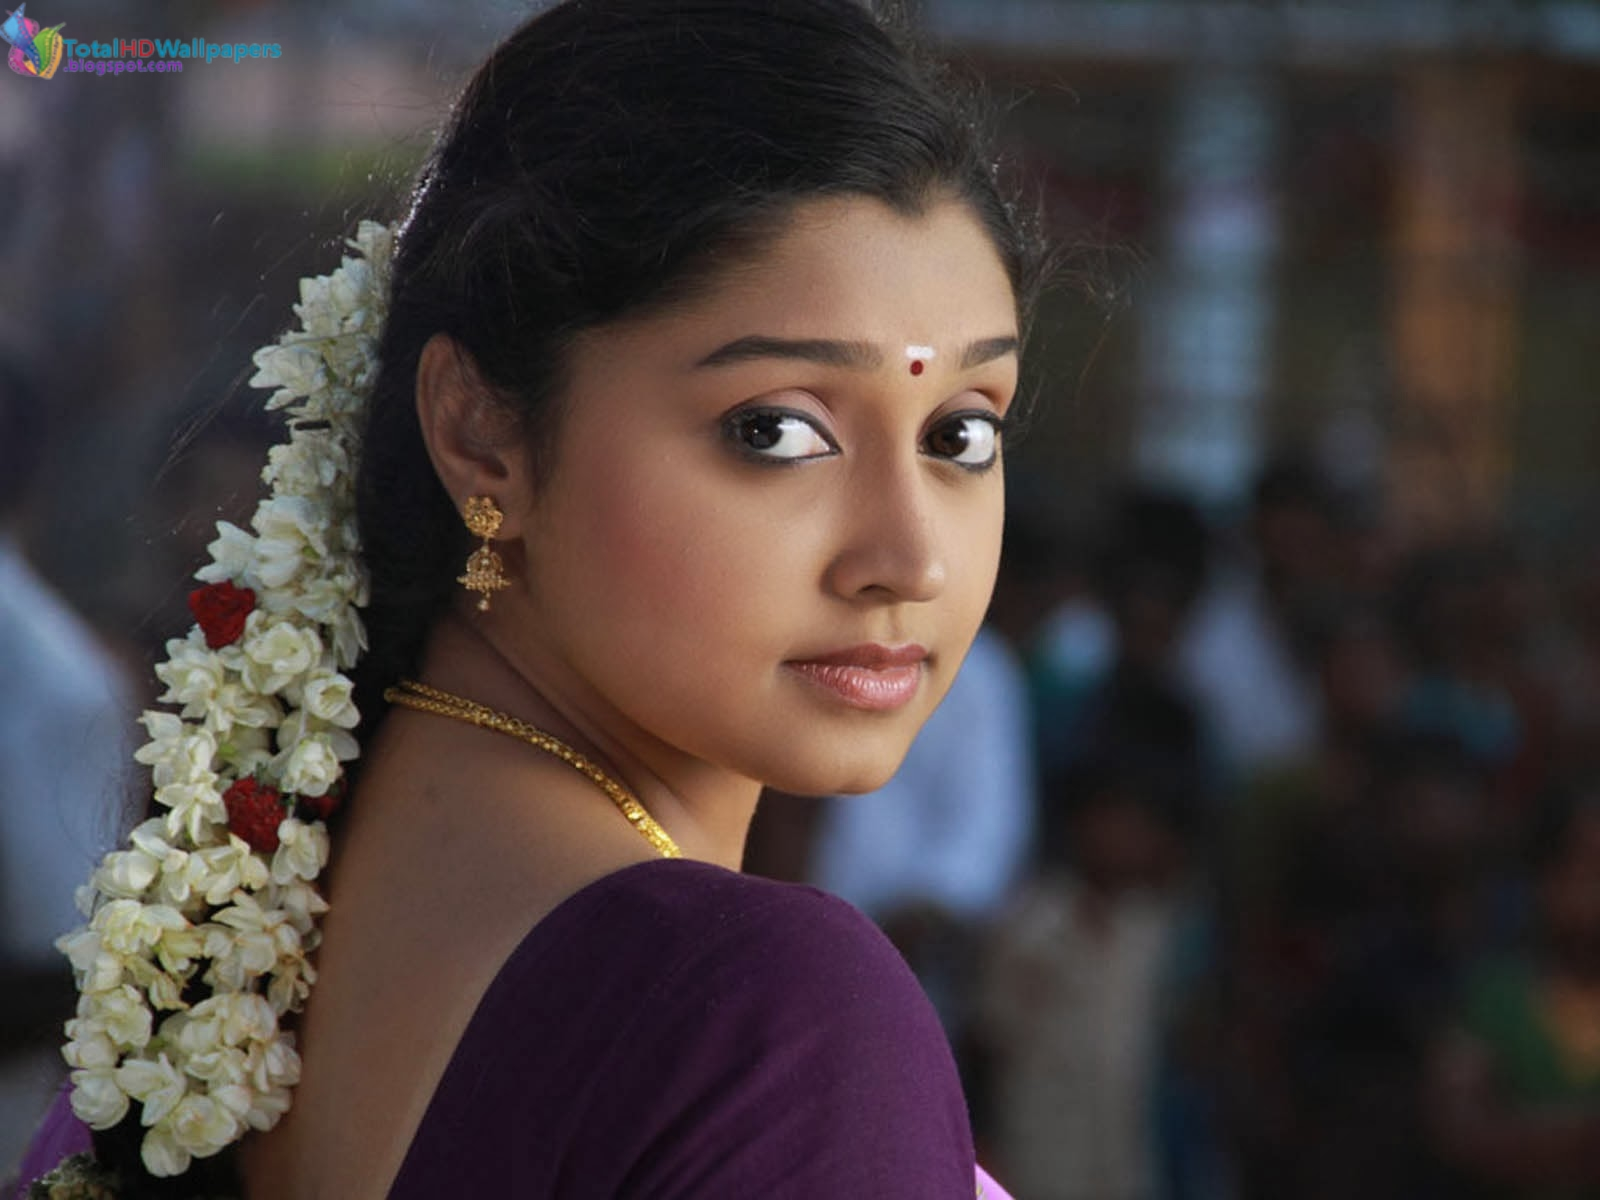 tamil actress hd wallpapers free downloads